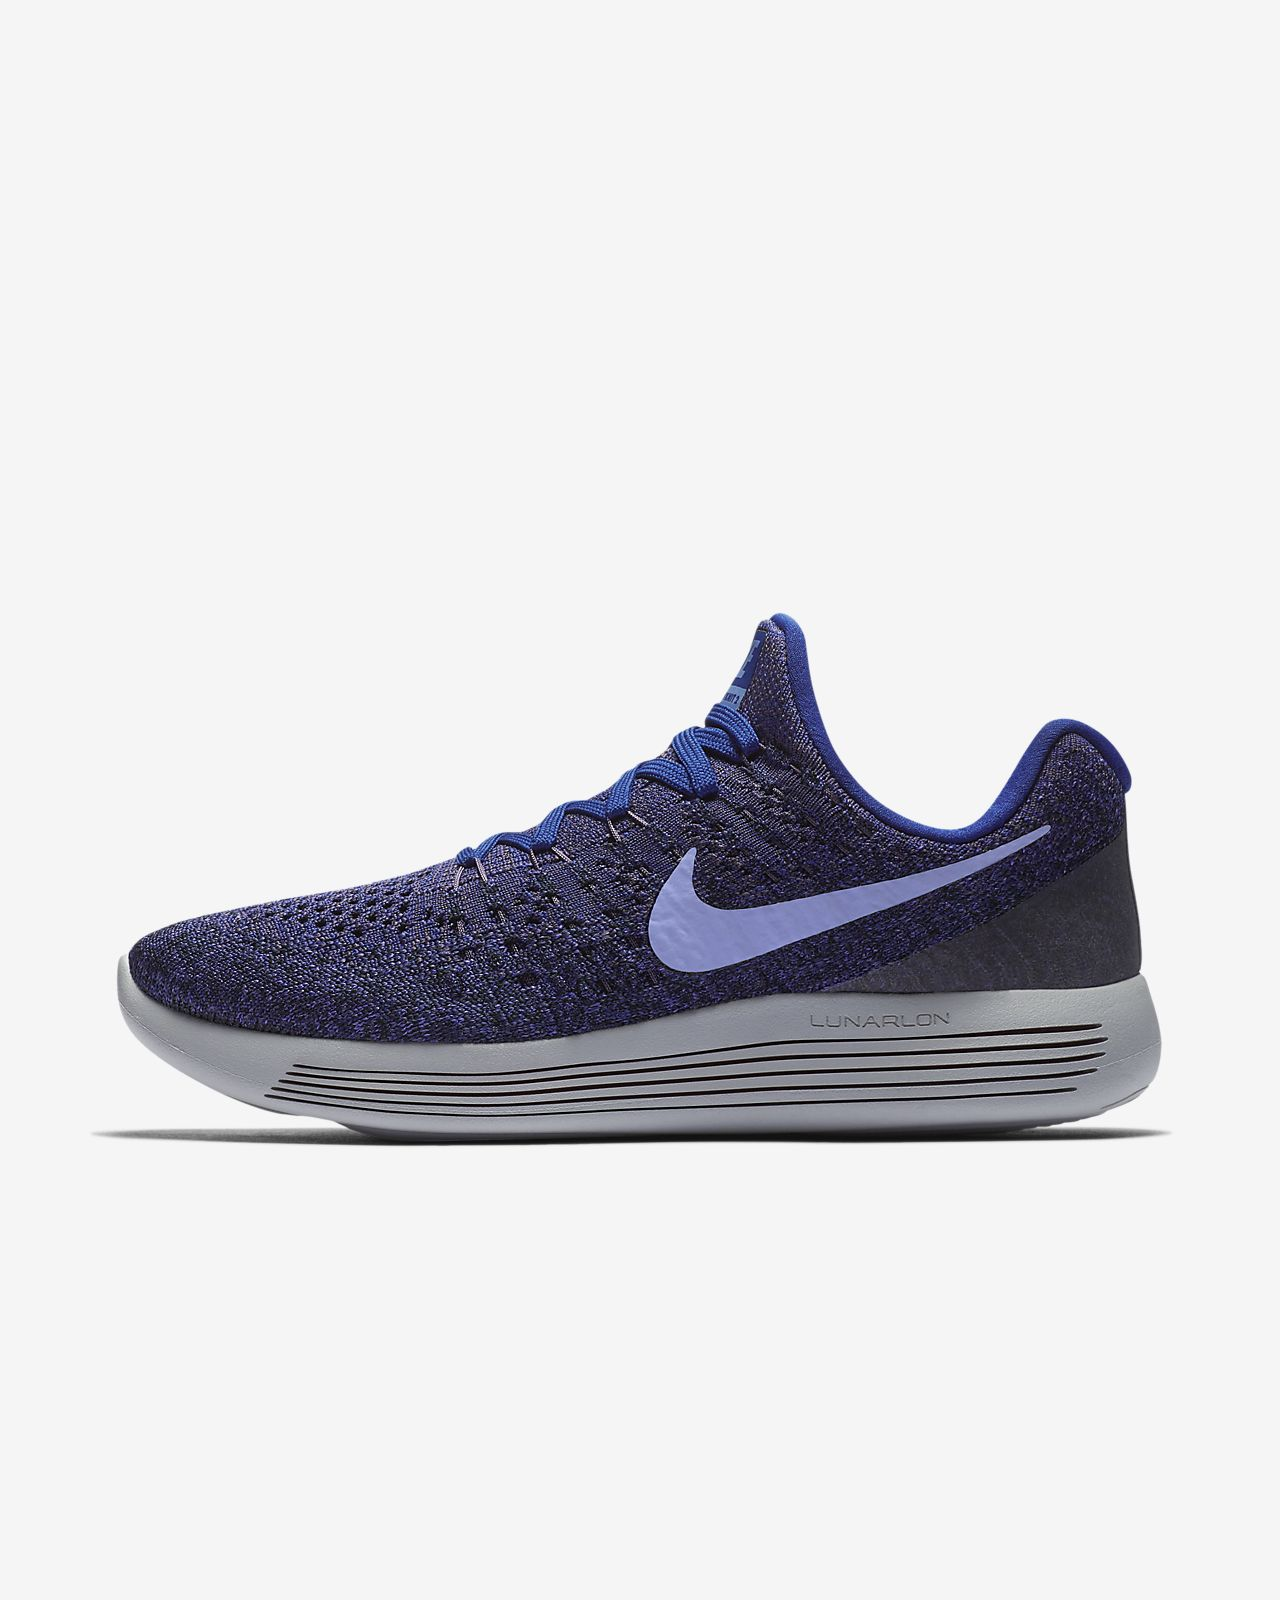 4b33cbe3231b9 Nike LunarEpic Low Flyknit 2 Women s Running Shoe. Nike.com IN